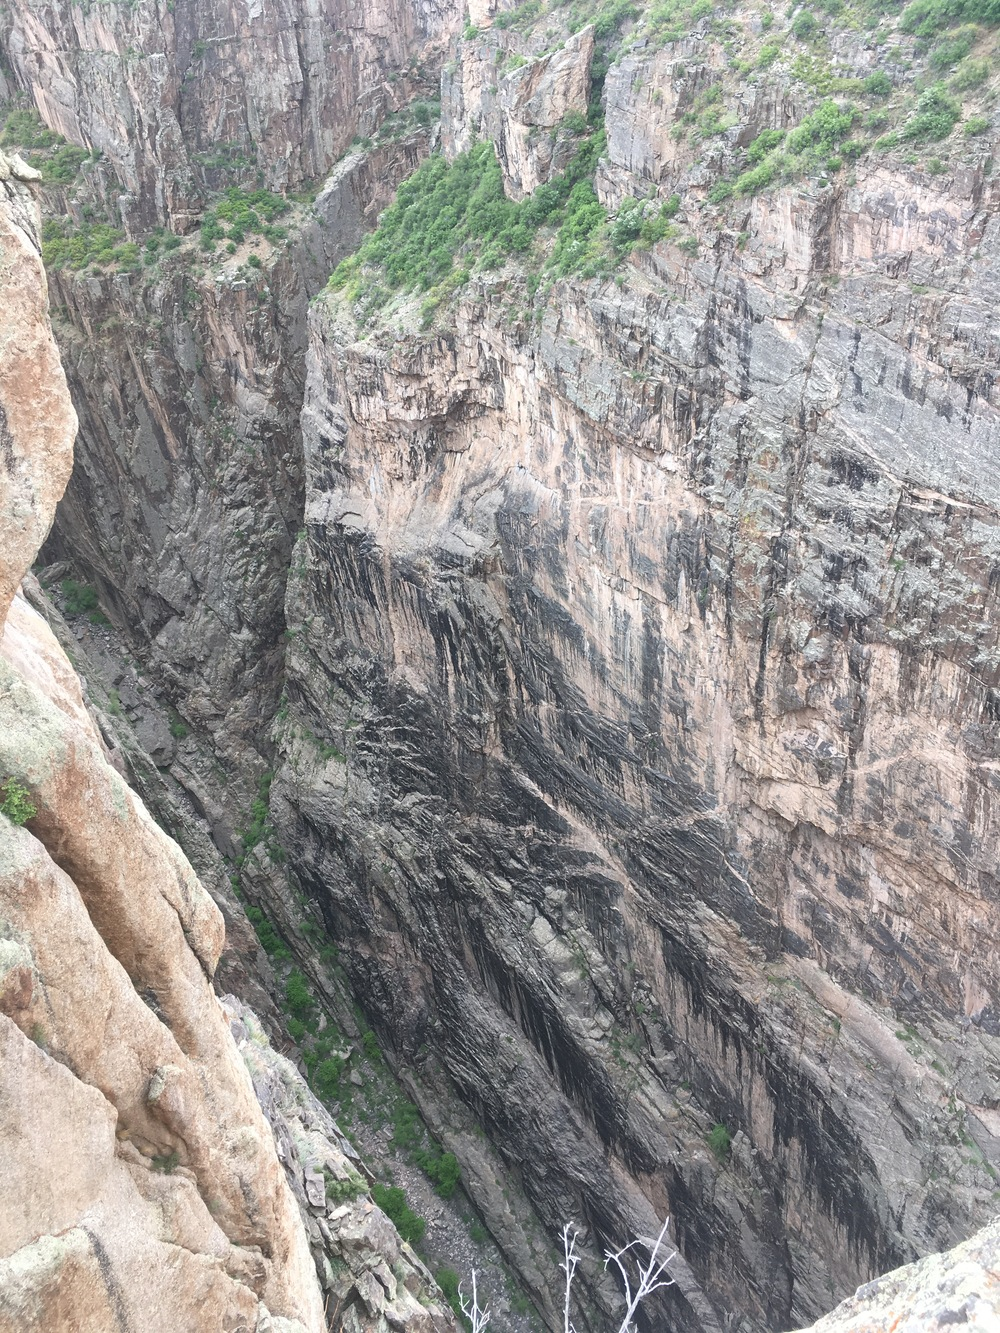 Discoloration and true black-canyon walls.